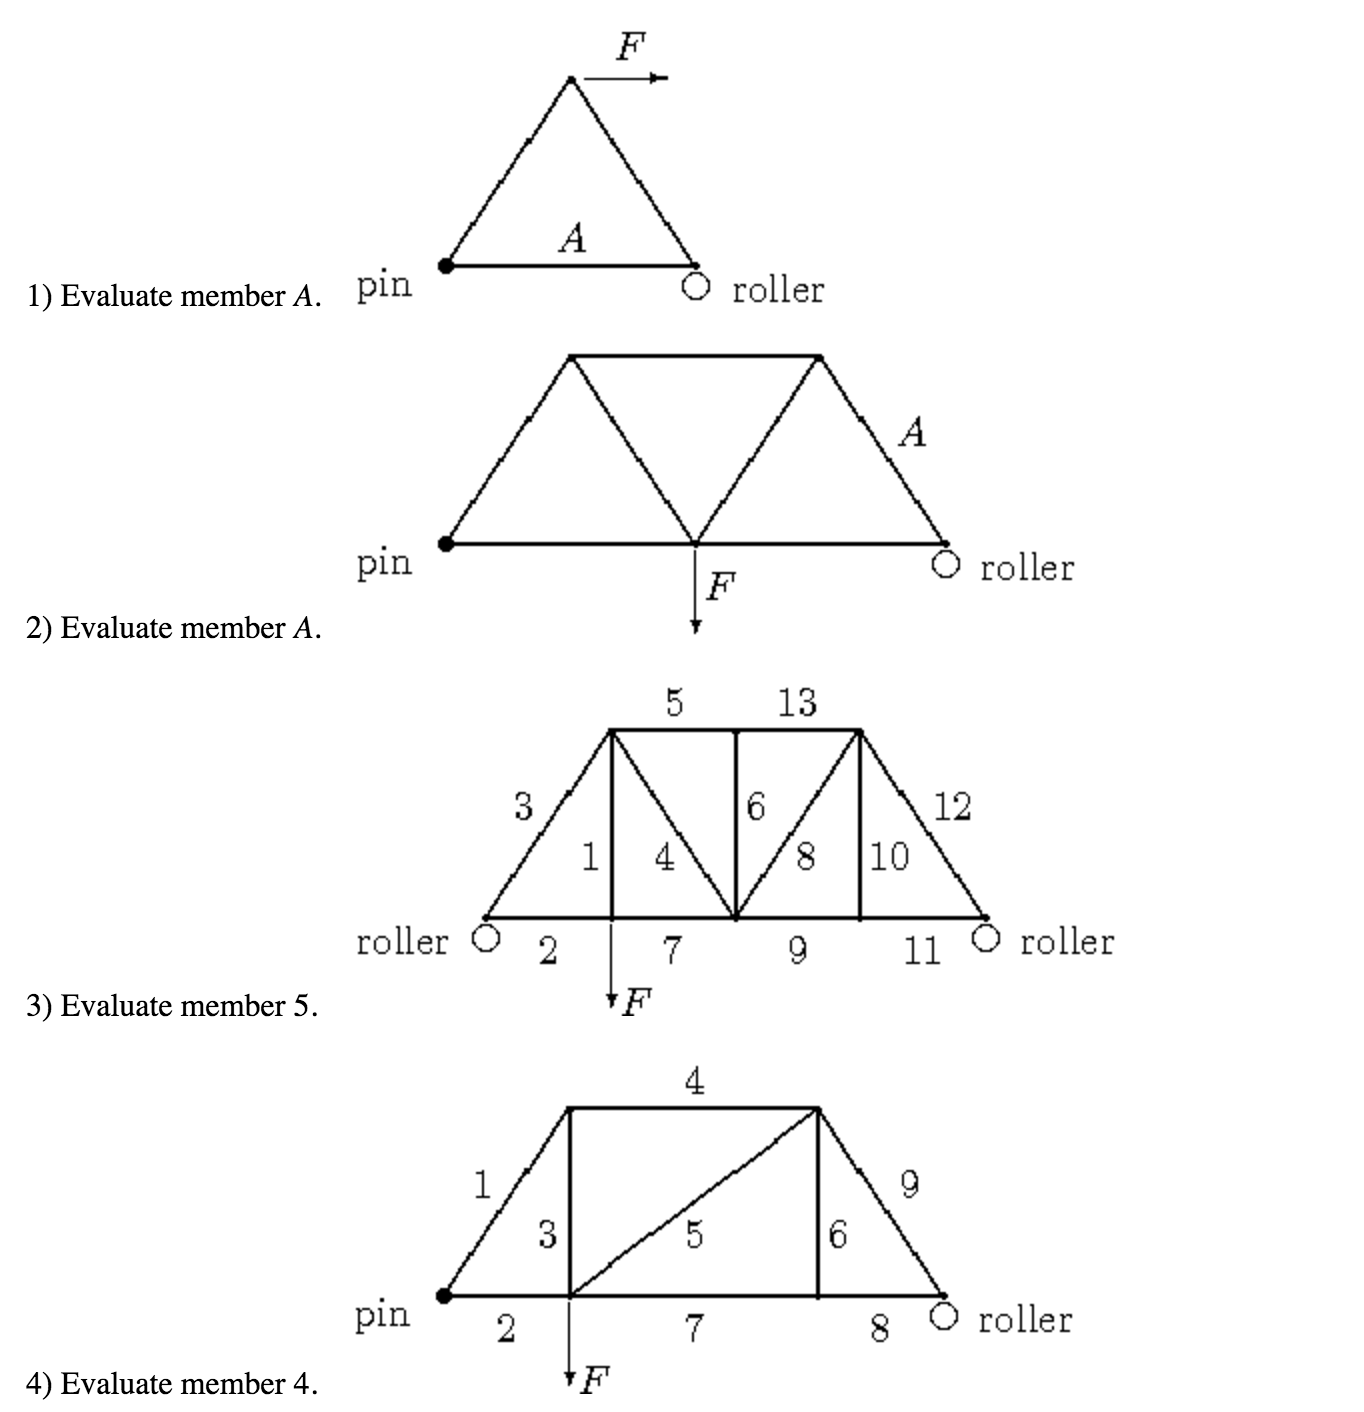 For Each Of The Six Truss Diagrams, Indicate Wheth